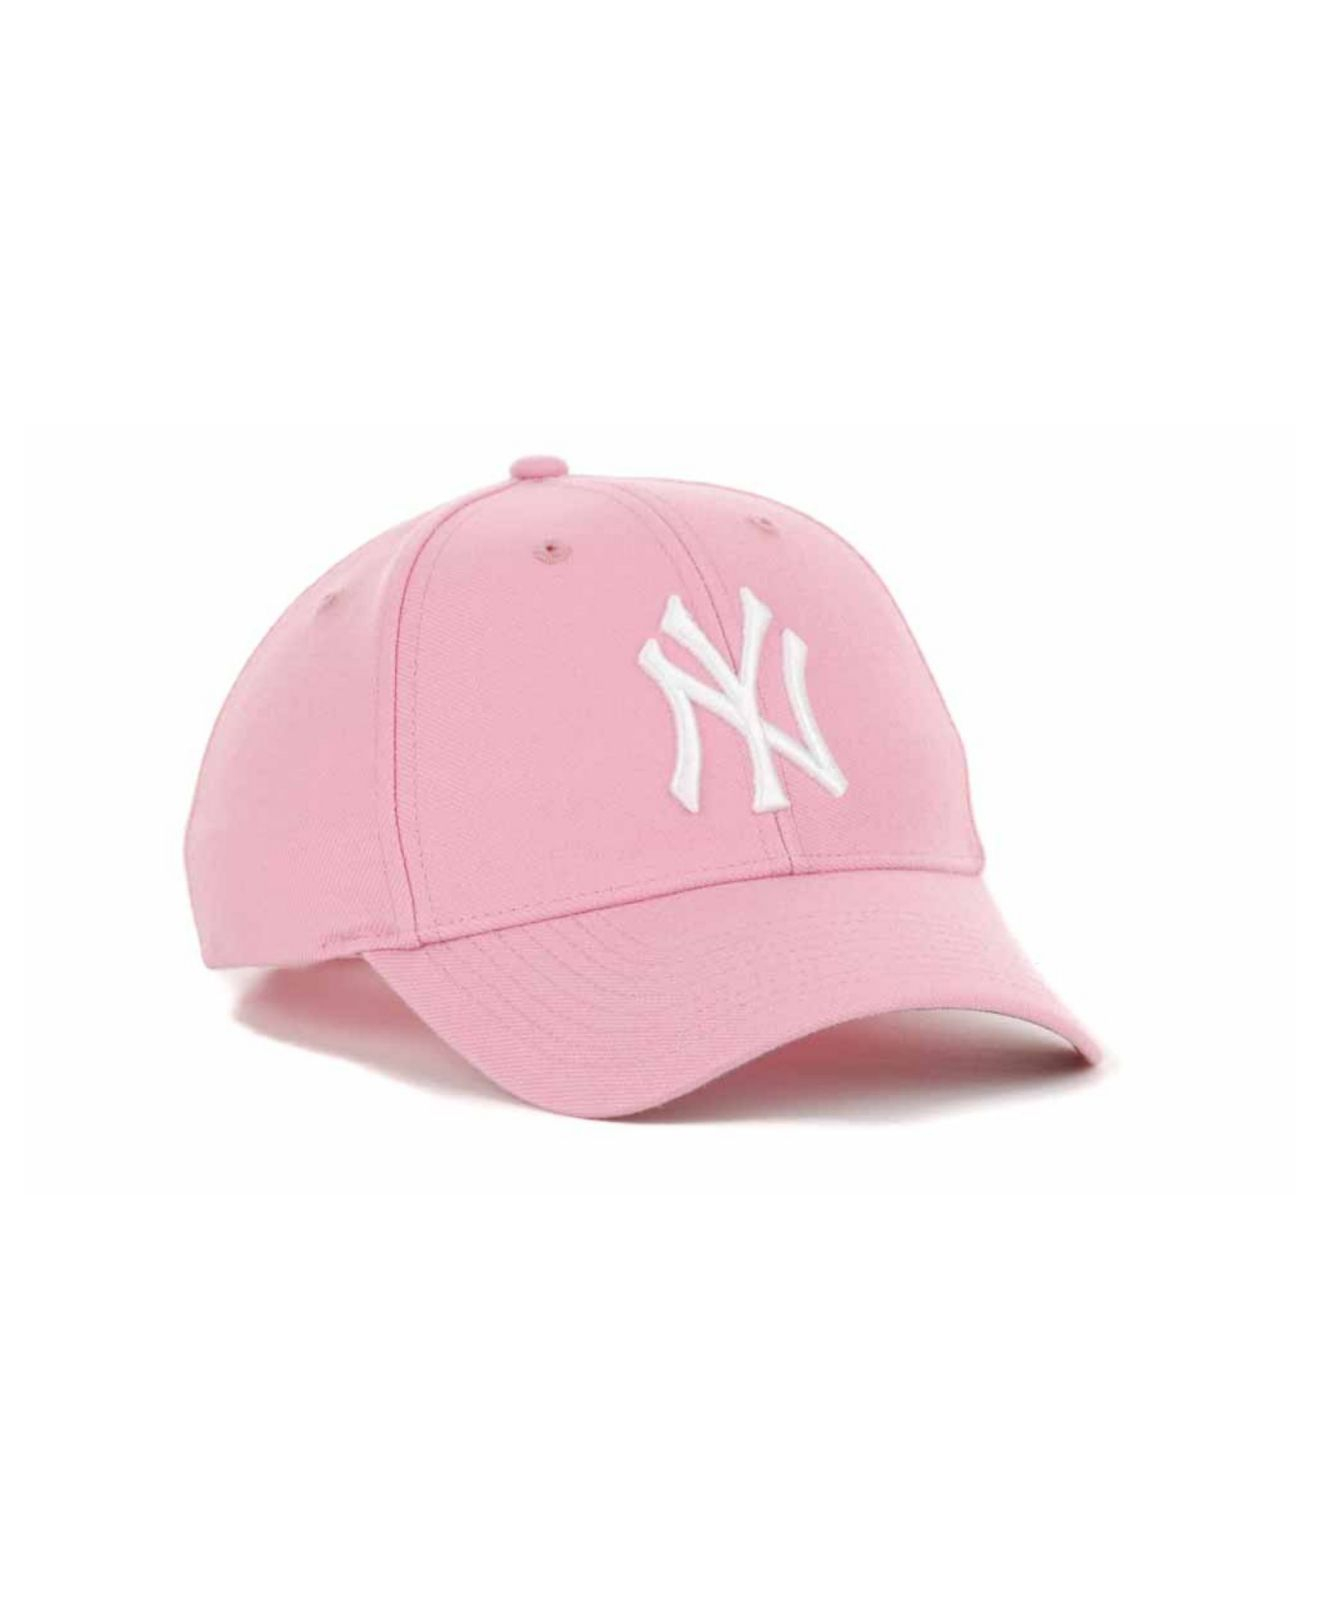 0ab7f4cfe58 ... promo code for new york yankees cap pink a85dd 401a5 ...